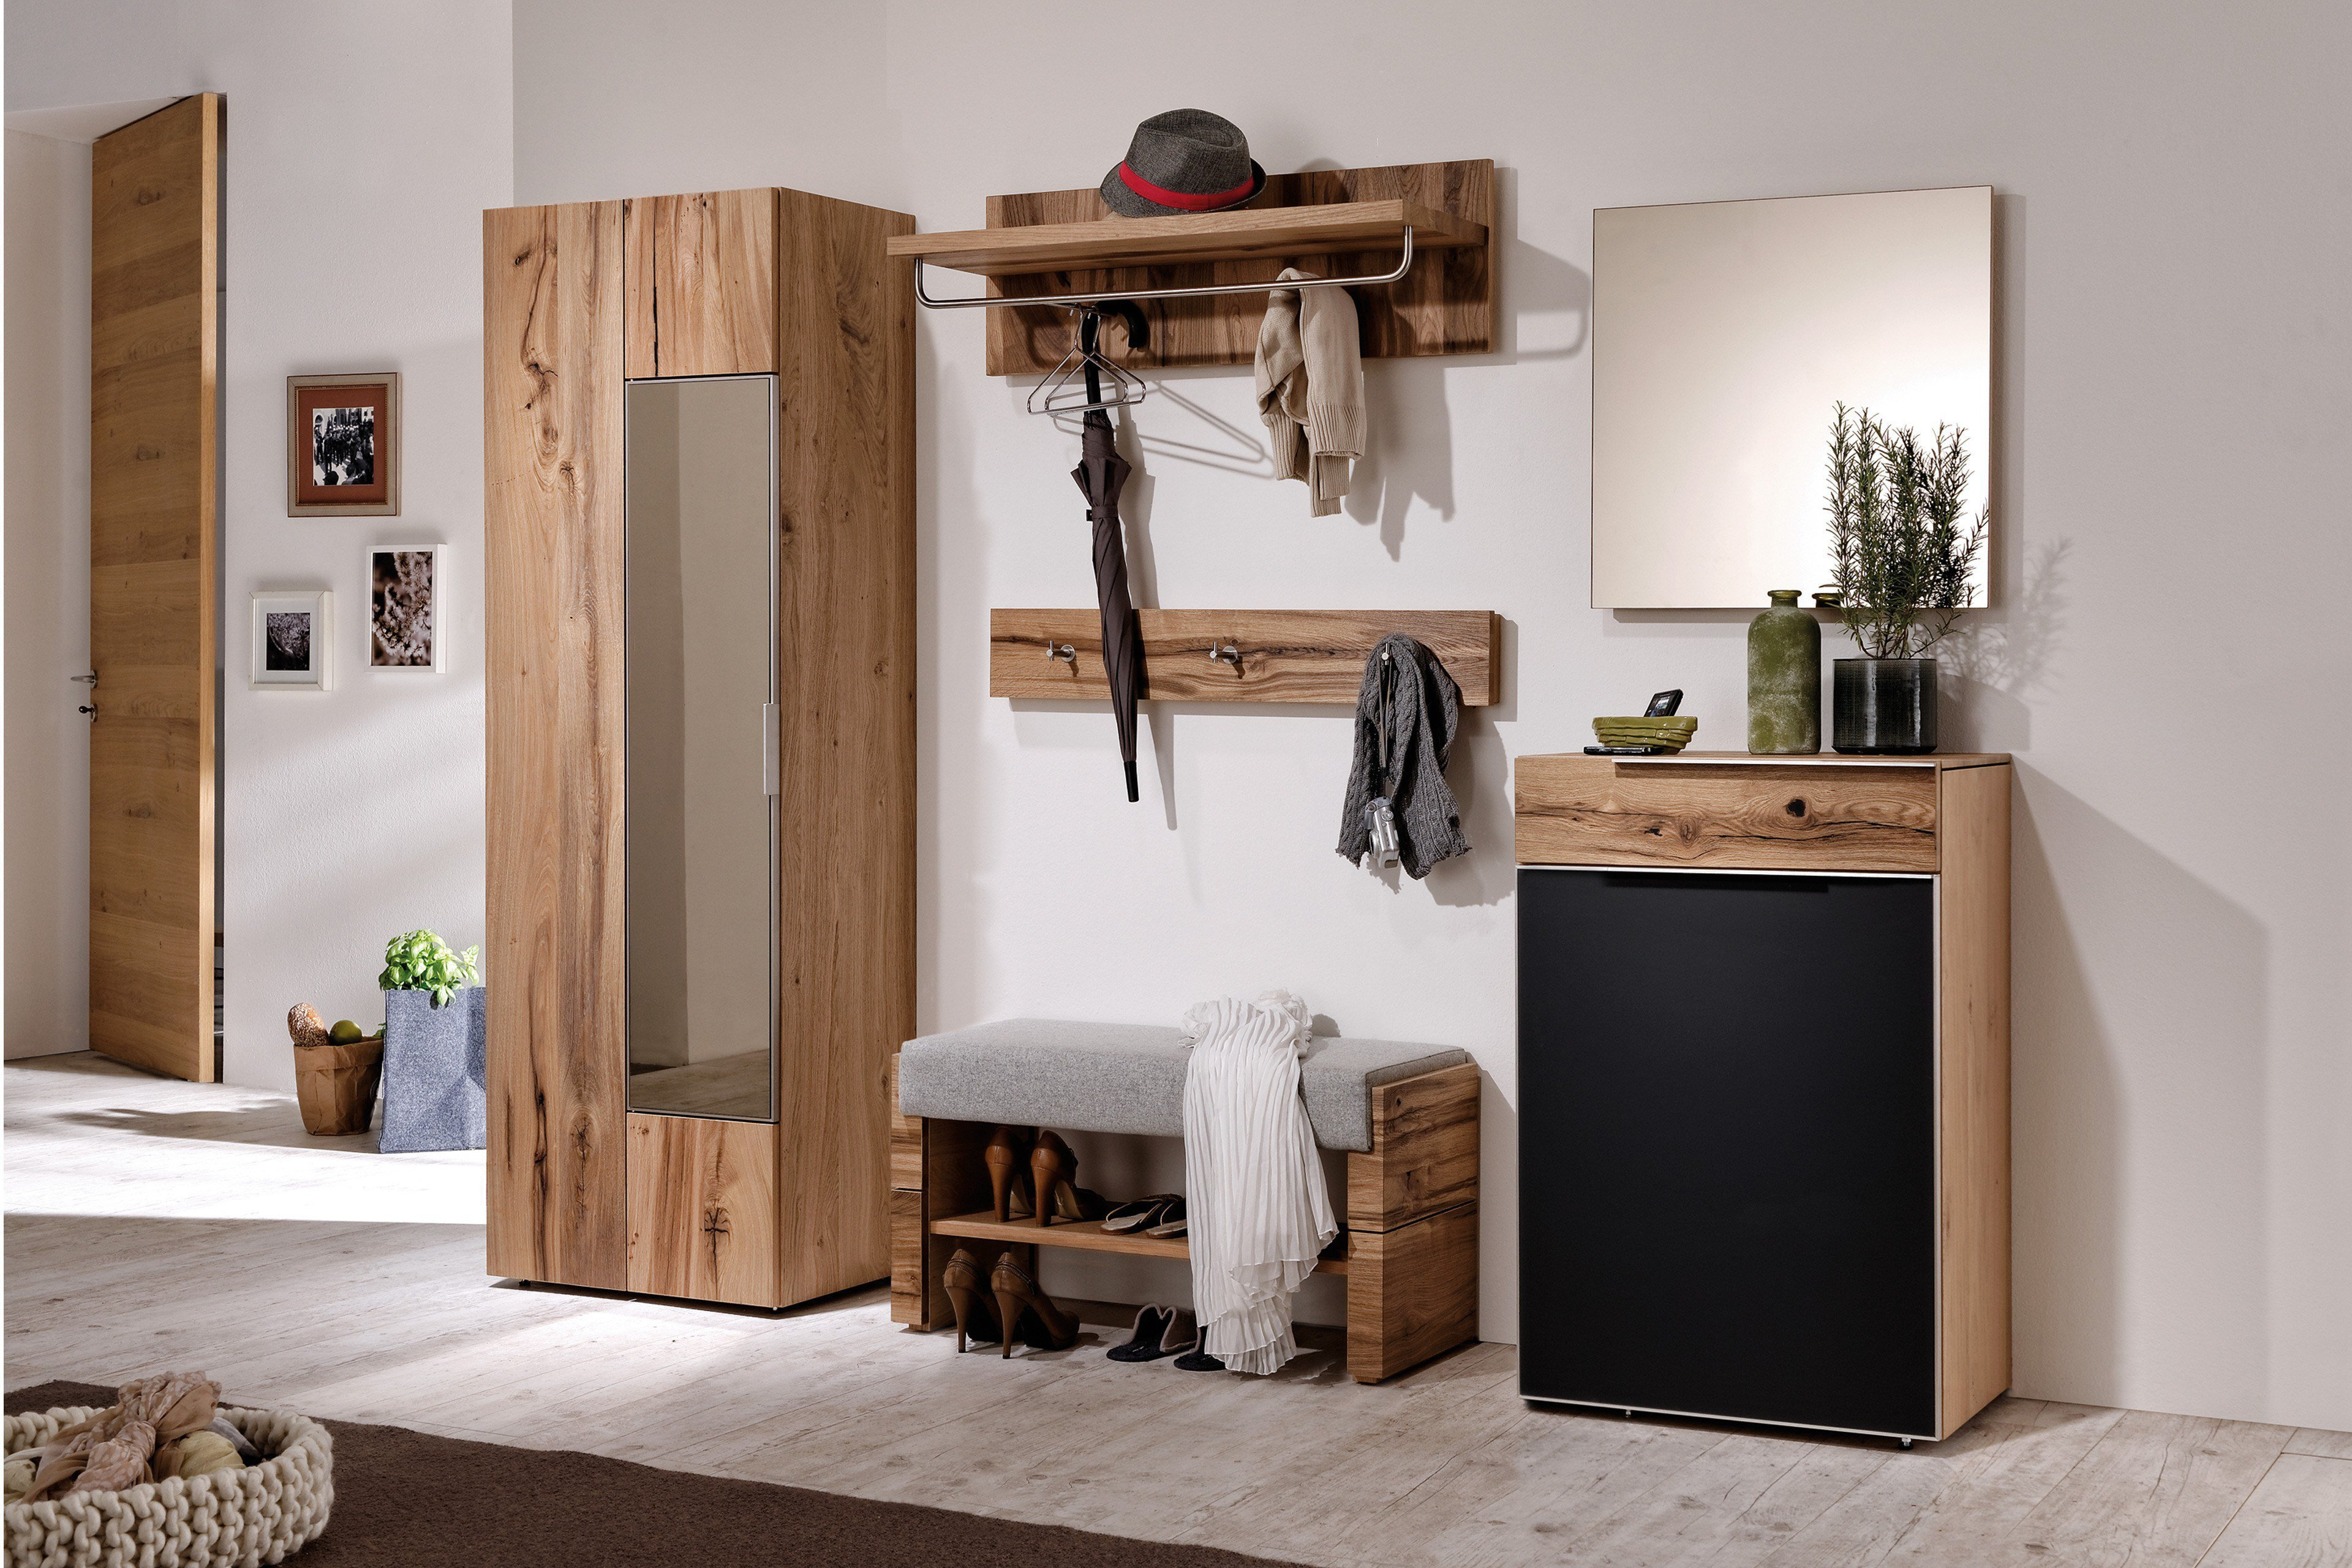 garderobe v alpin von voglauer eiche altholz m bel letz ihr online shop. Black Bedroom Furniture Sets. Home Design Ideas